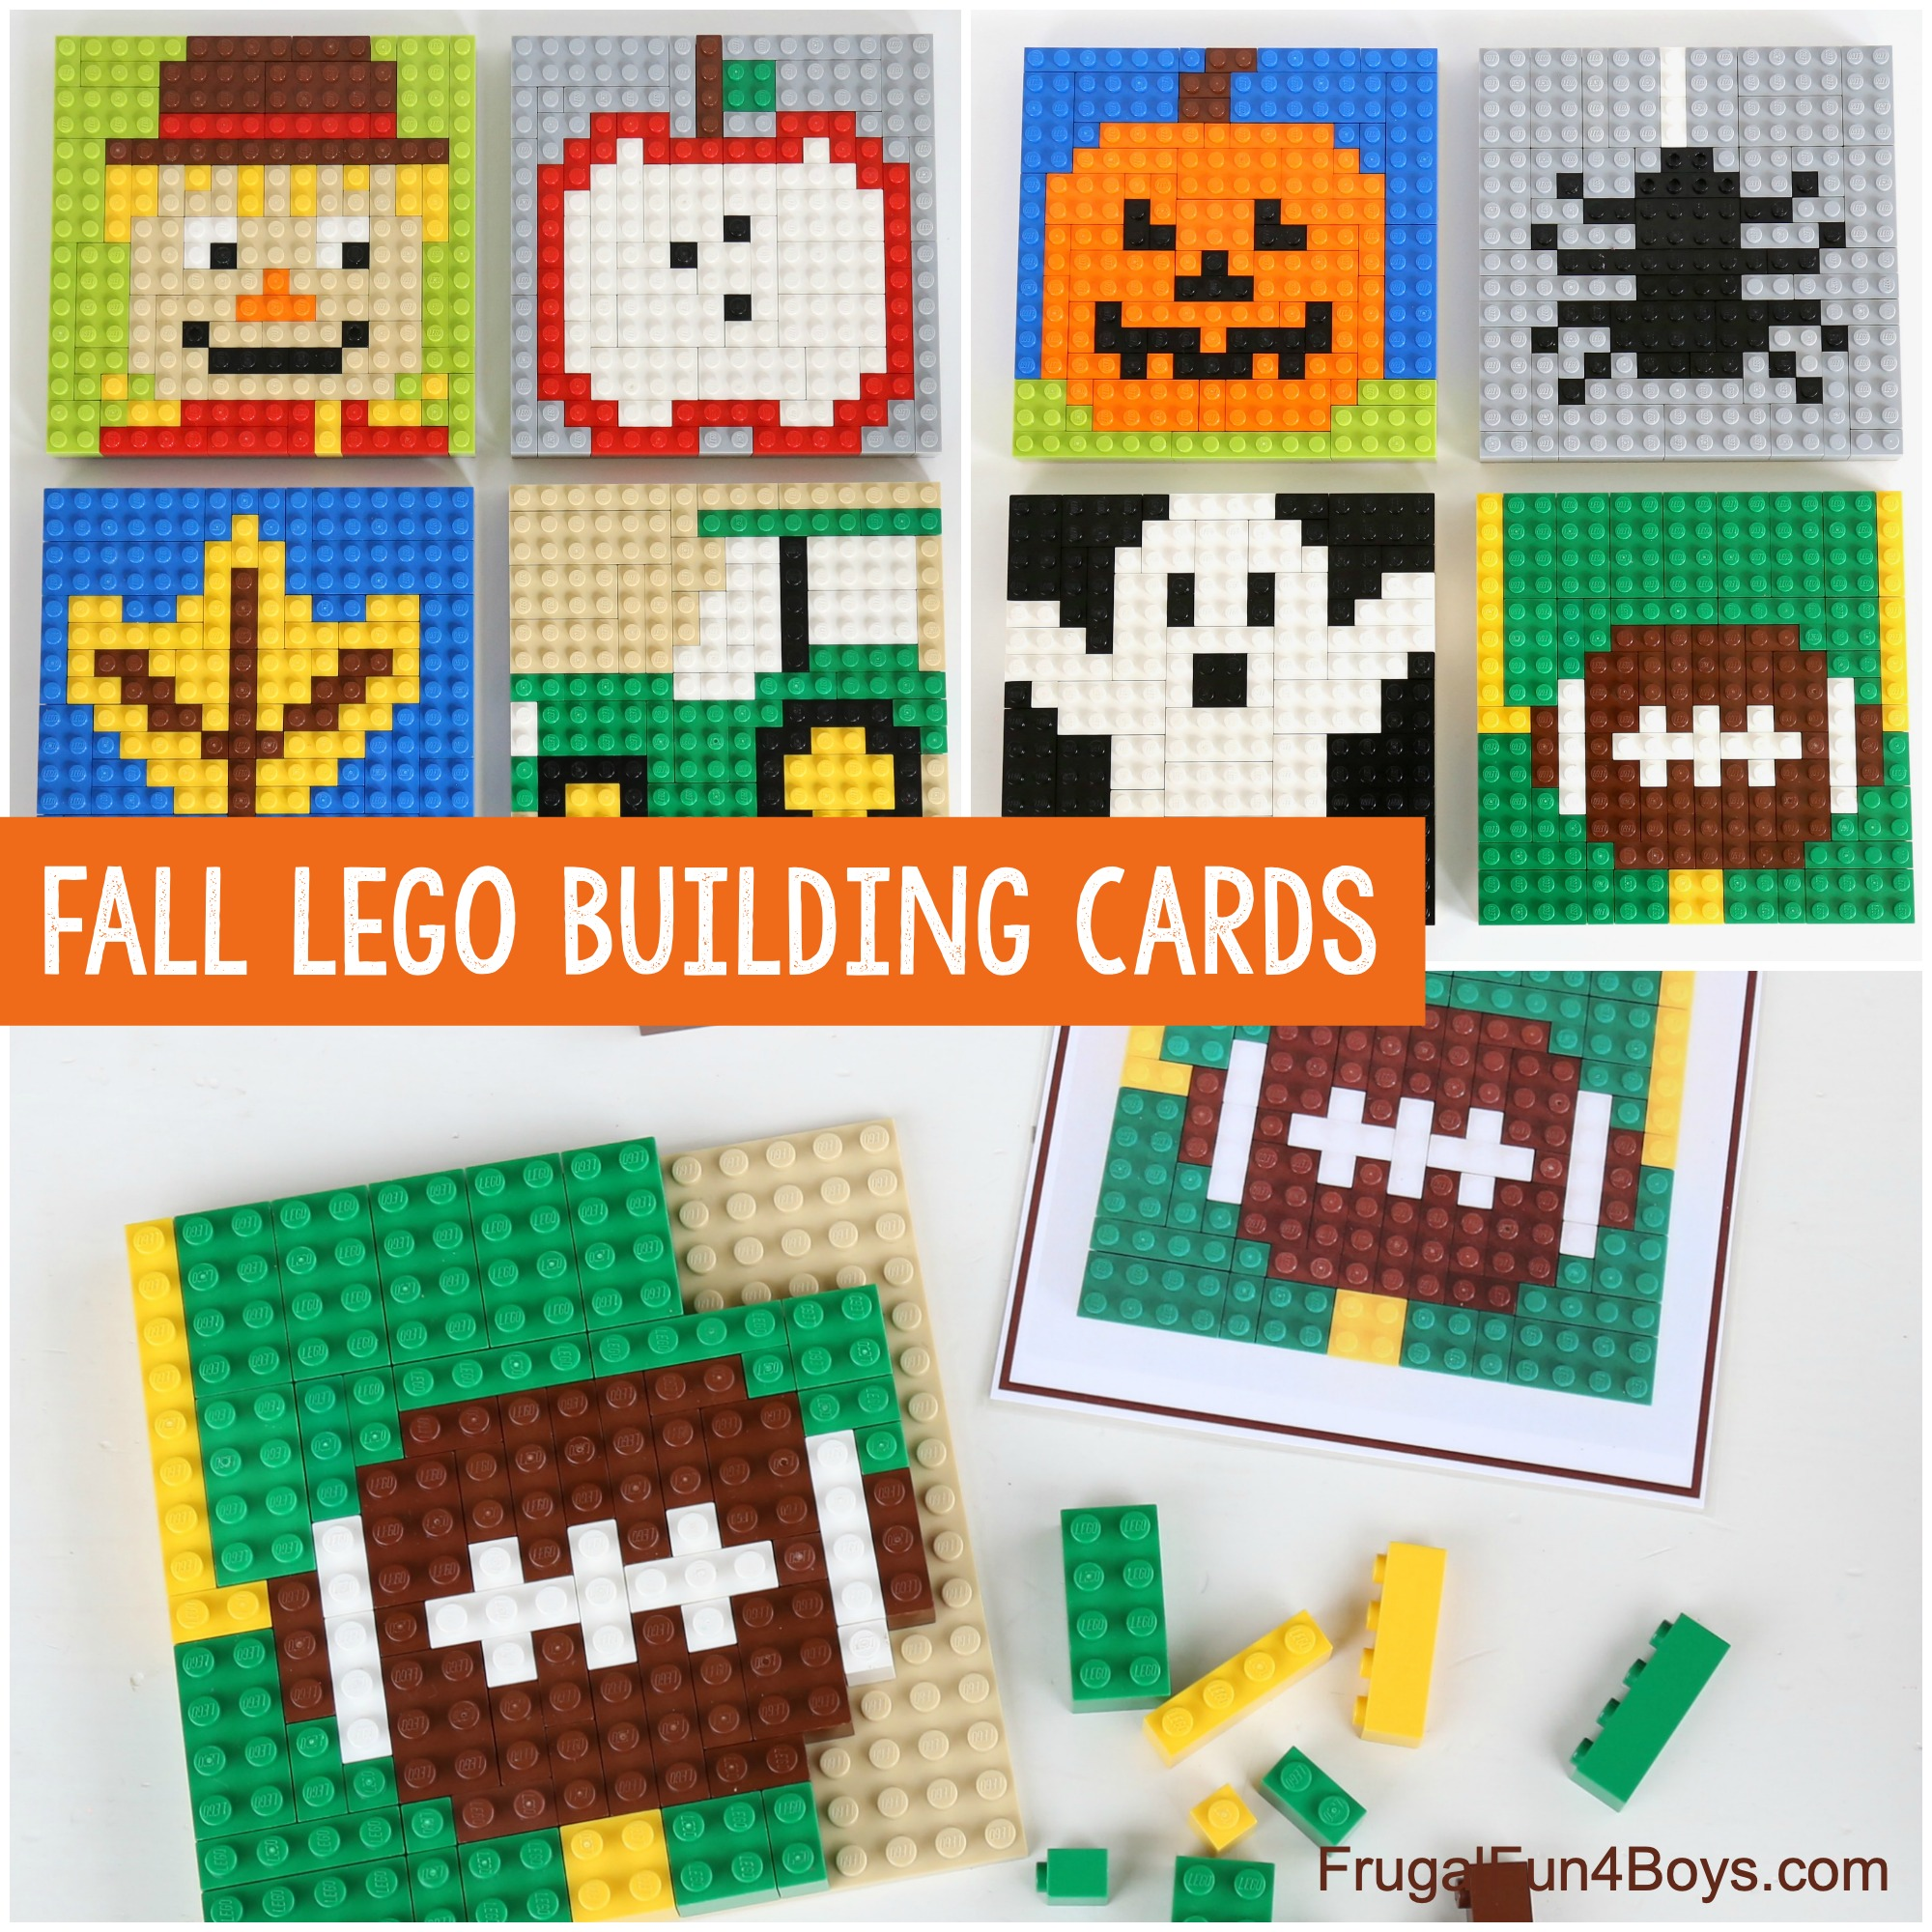 Fall LEGO Building Cards - Fall themed mosaics to build on a LEGO wall or on a baseplate